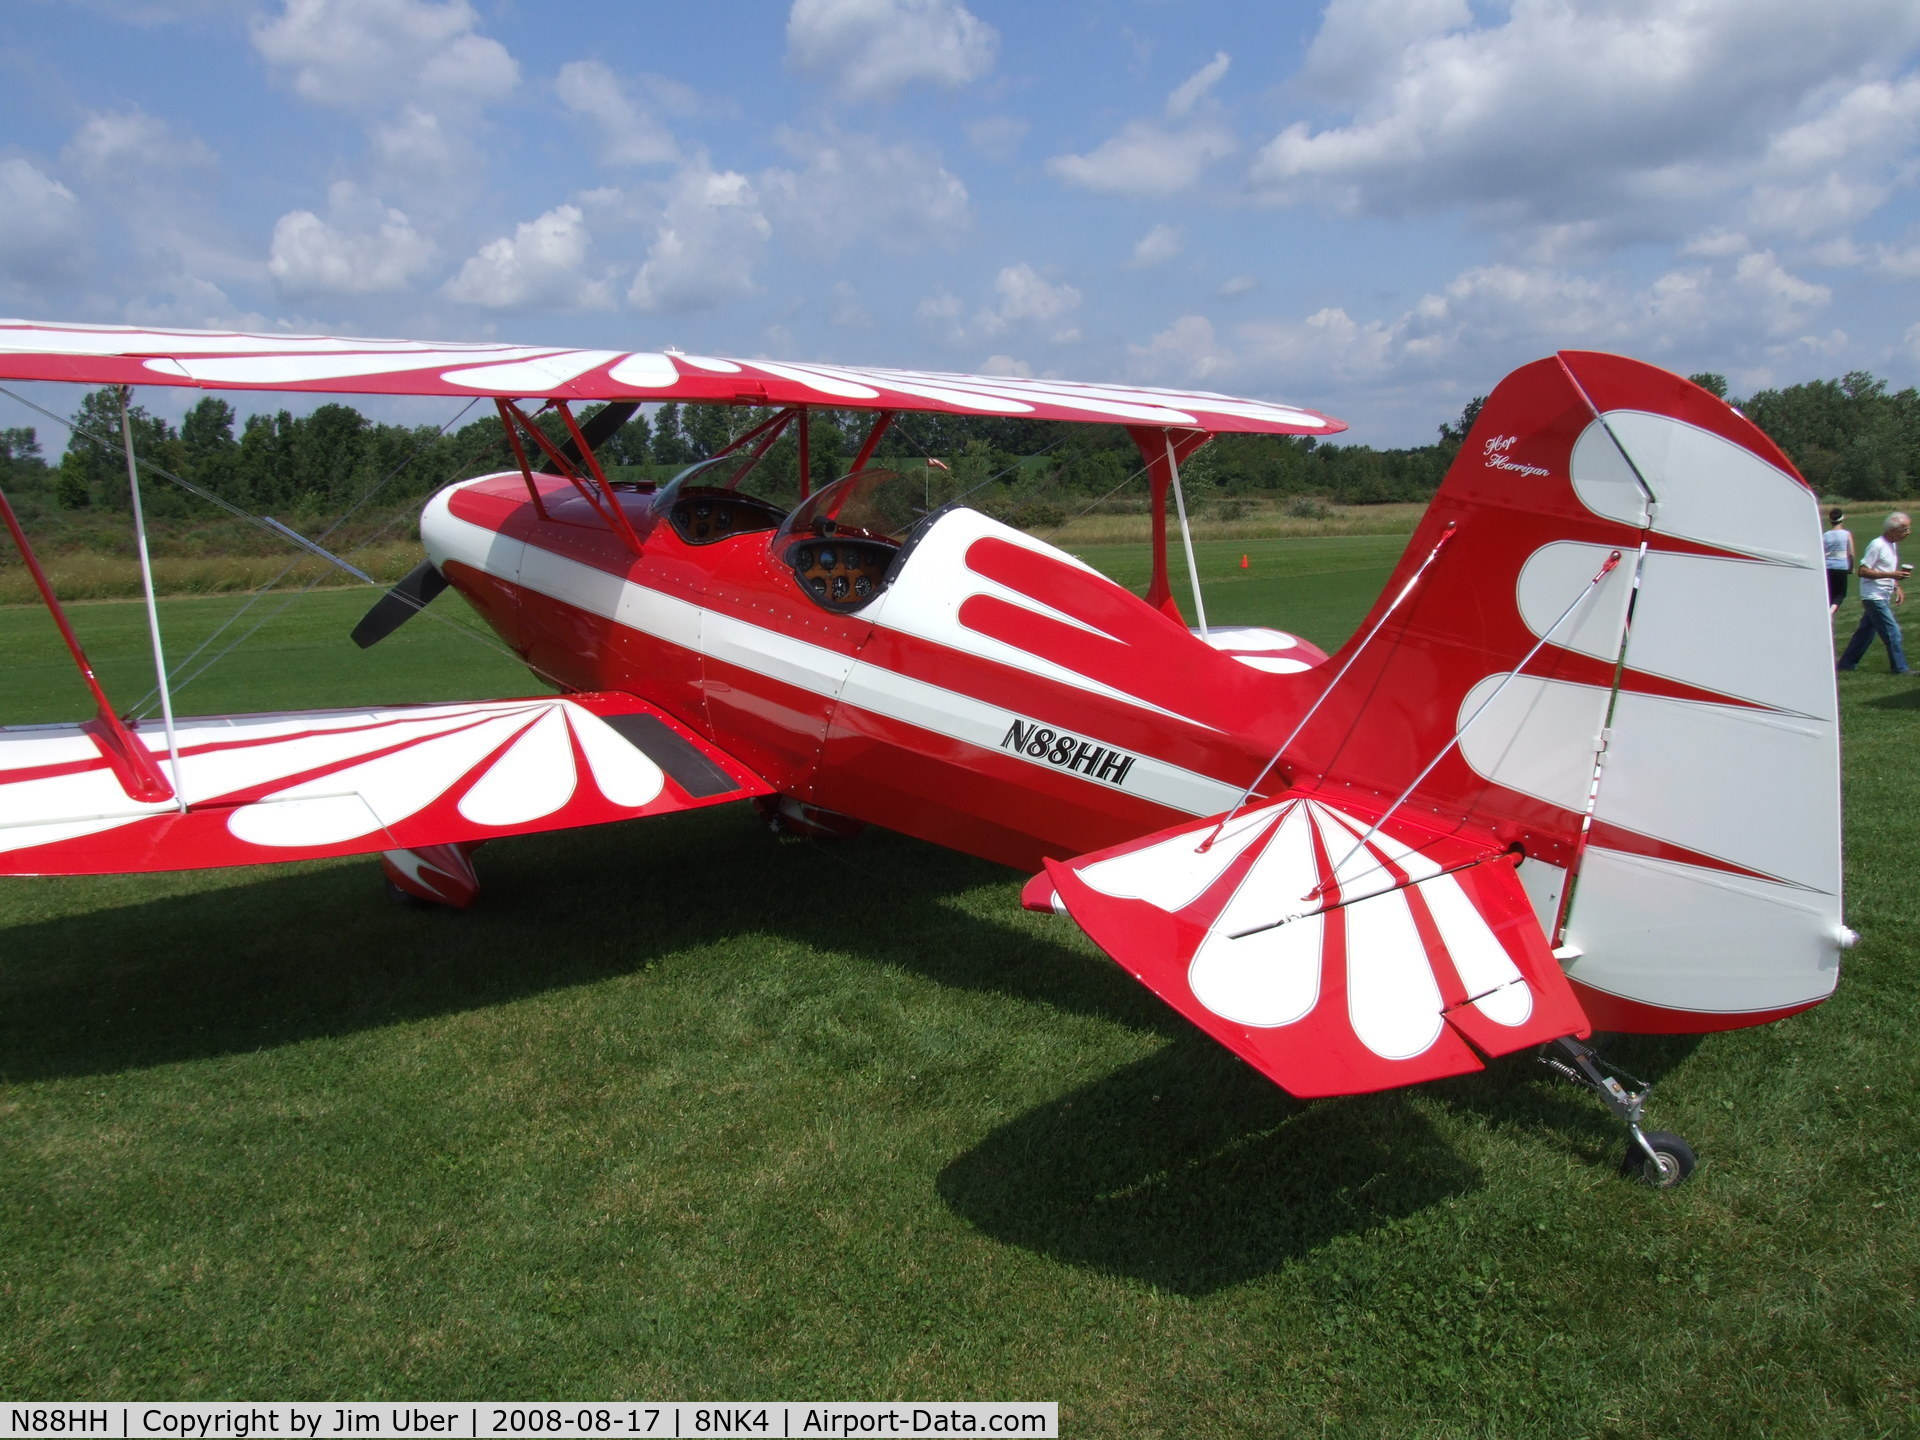 N88HH, 1997 Stolp SA-300 Starduster Too C/N 340, Seen at the Bethany Hot-Dog Day